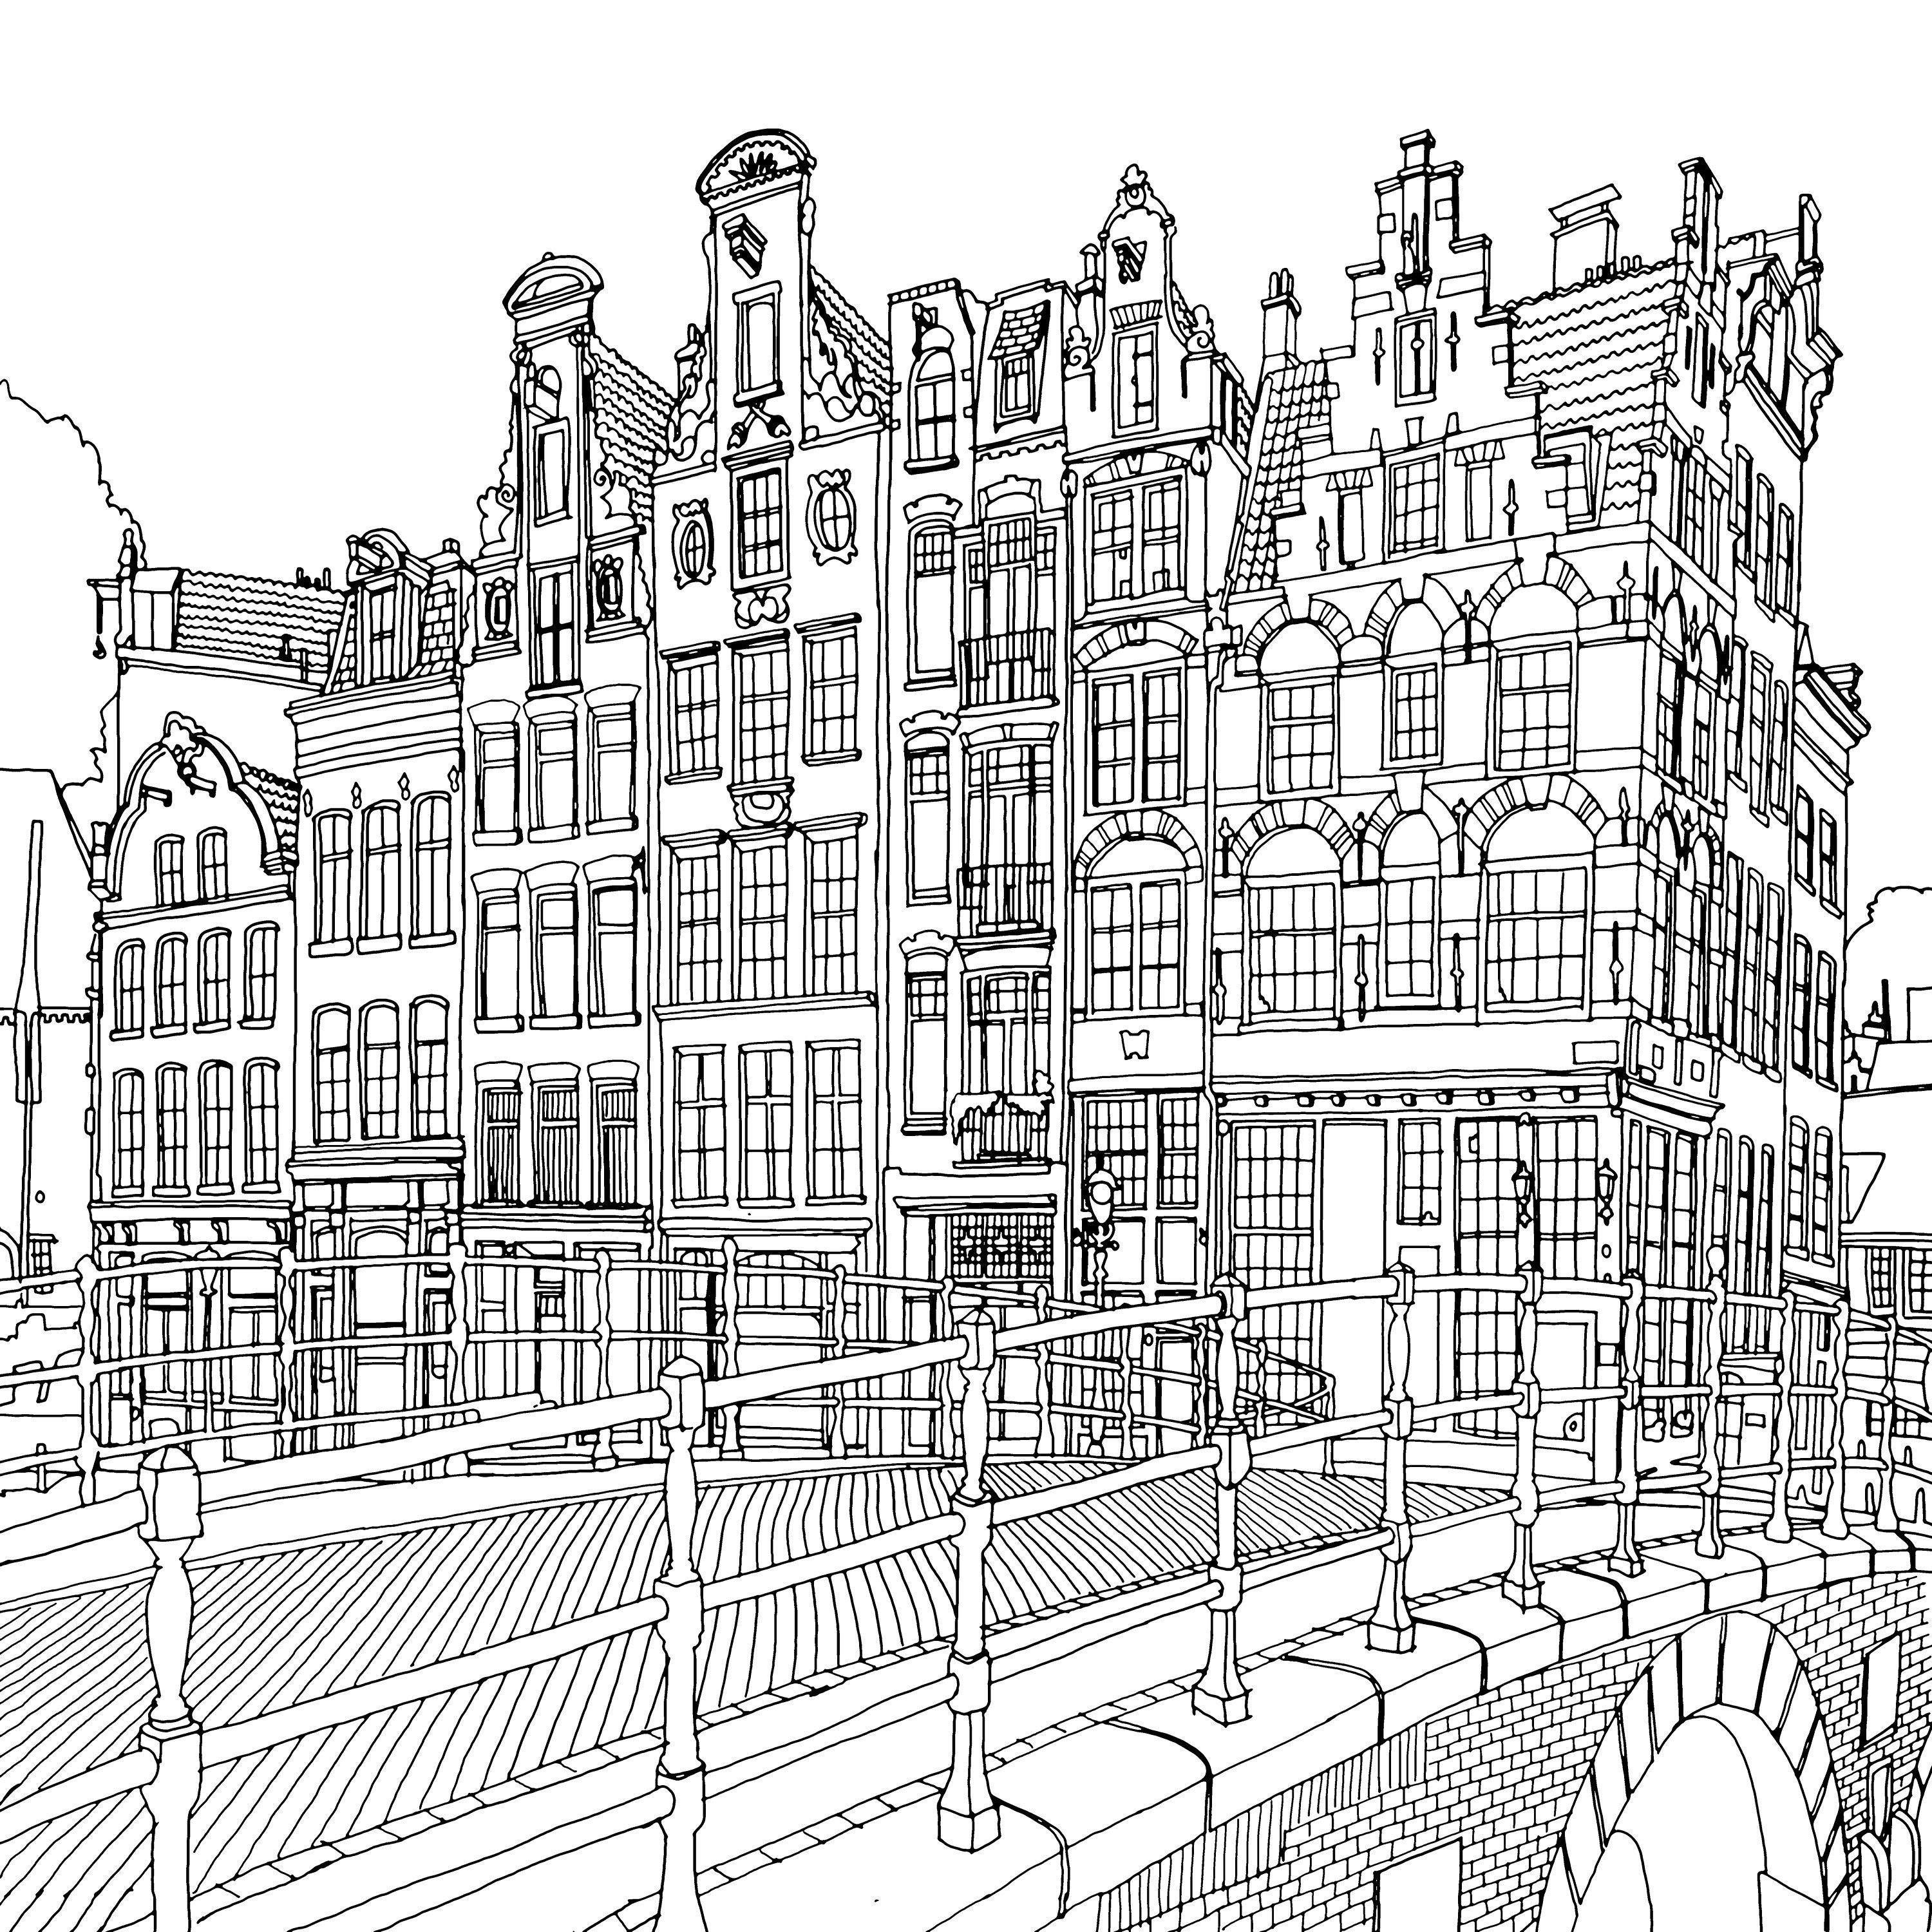 Fantastic Cities The Most Intricate All Ages Colouring Book Yet Fantastic Cities Coloring Book Coloring Books Coloring Pages